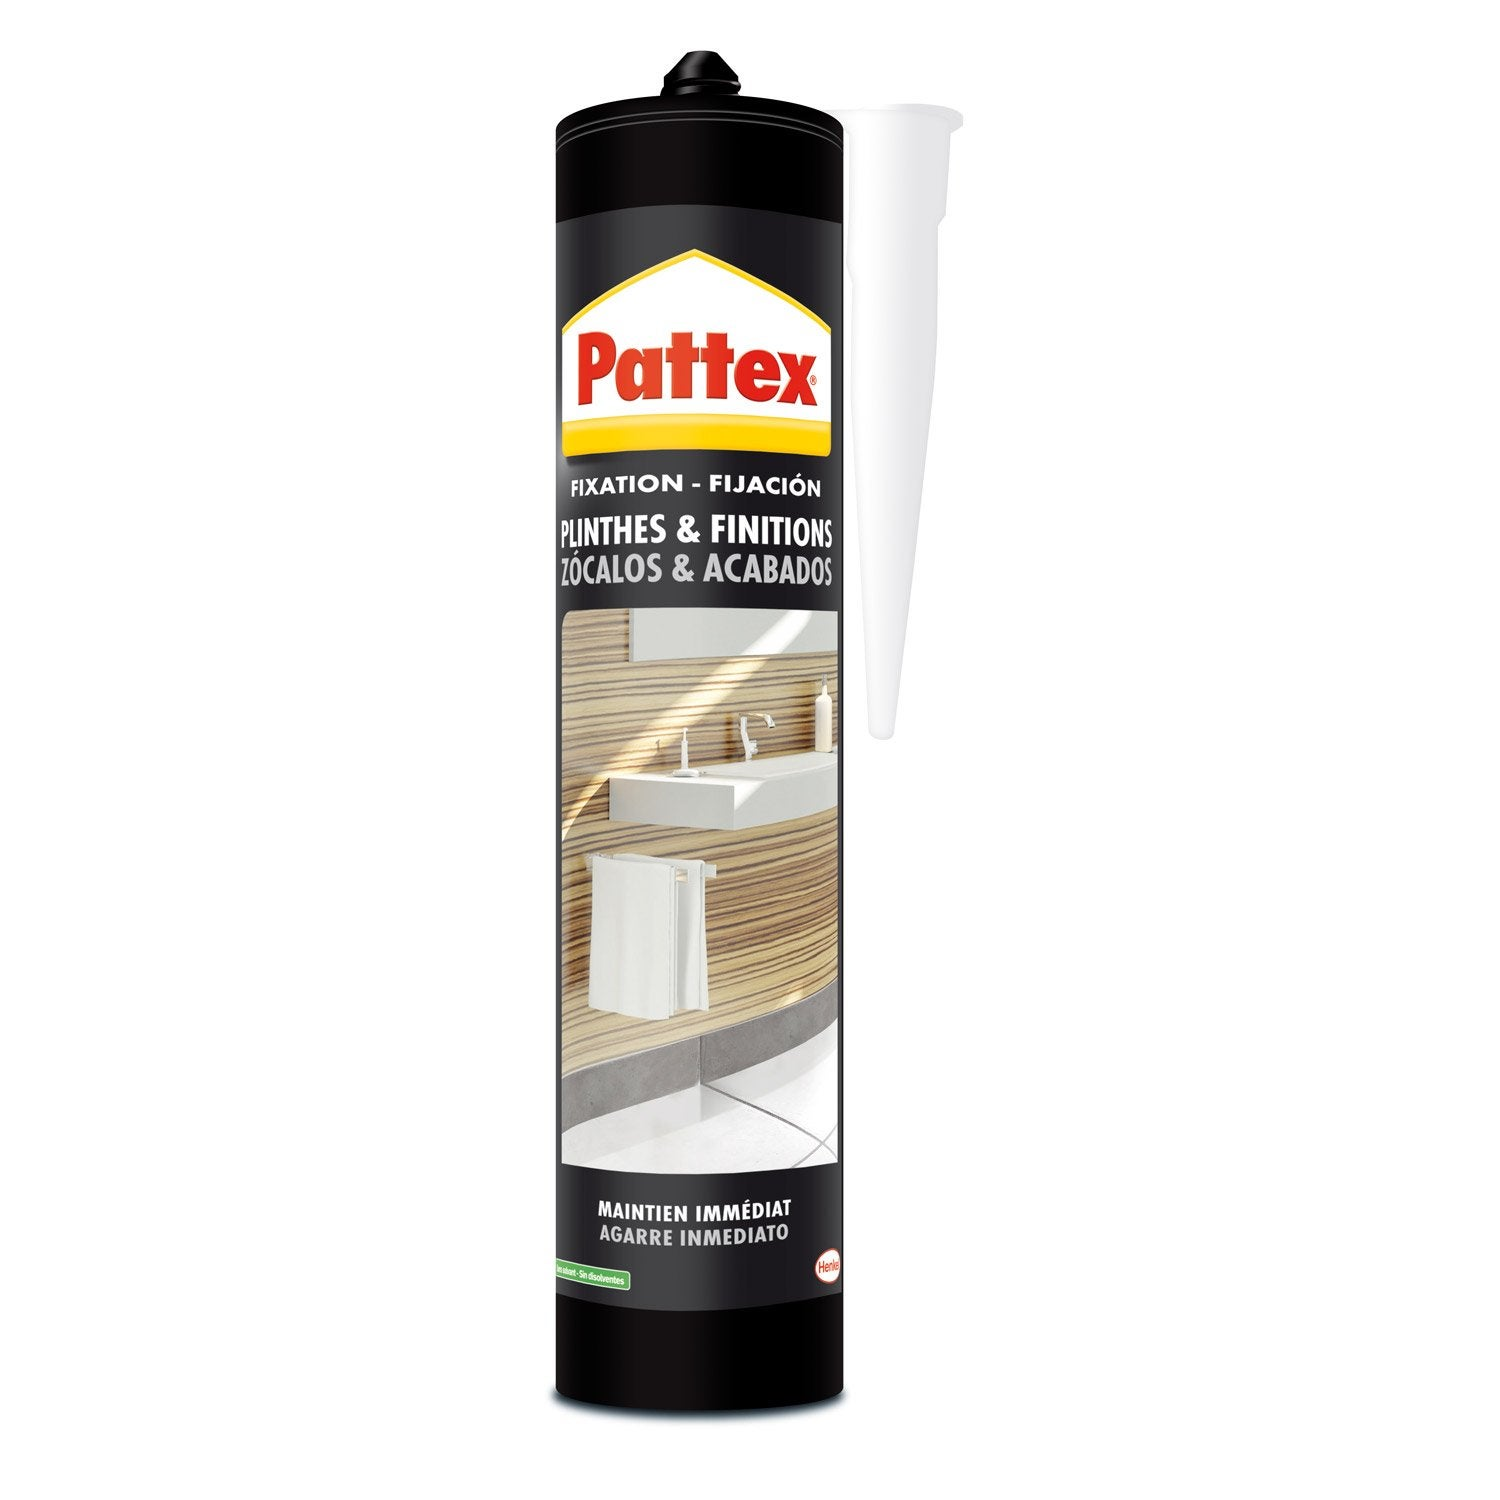 colle mastic plinthes carrelages pattex 450 g leroy merlin. Black Bedroom Furniture Sets. Home Design Ideas